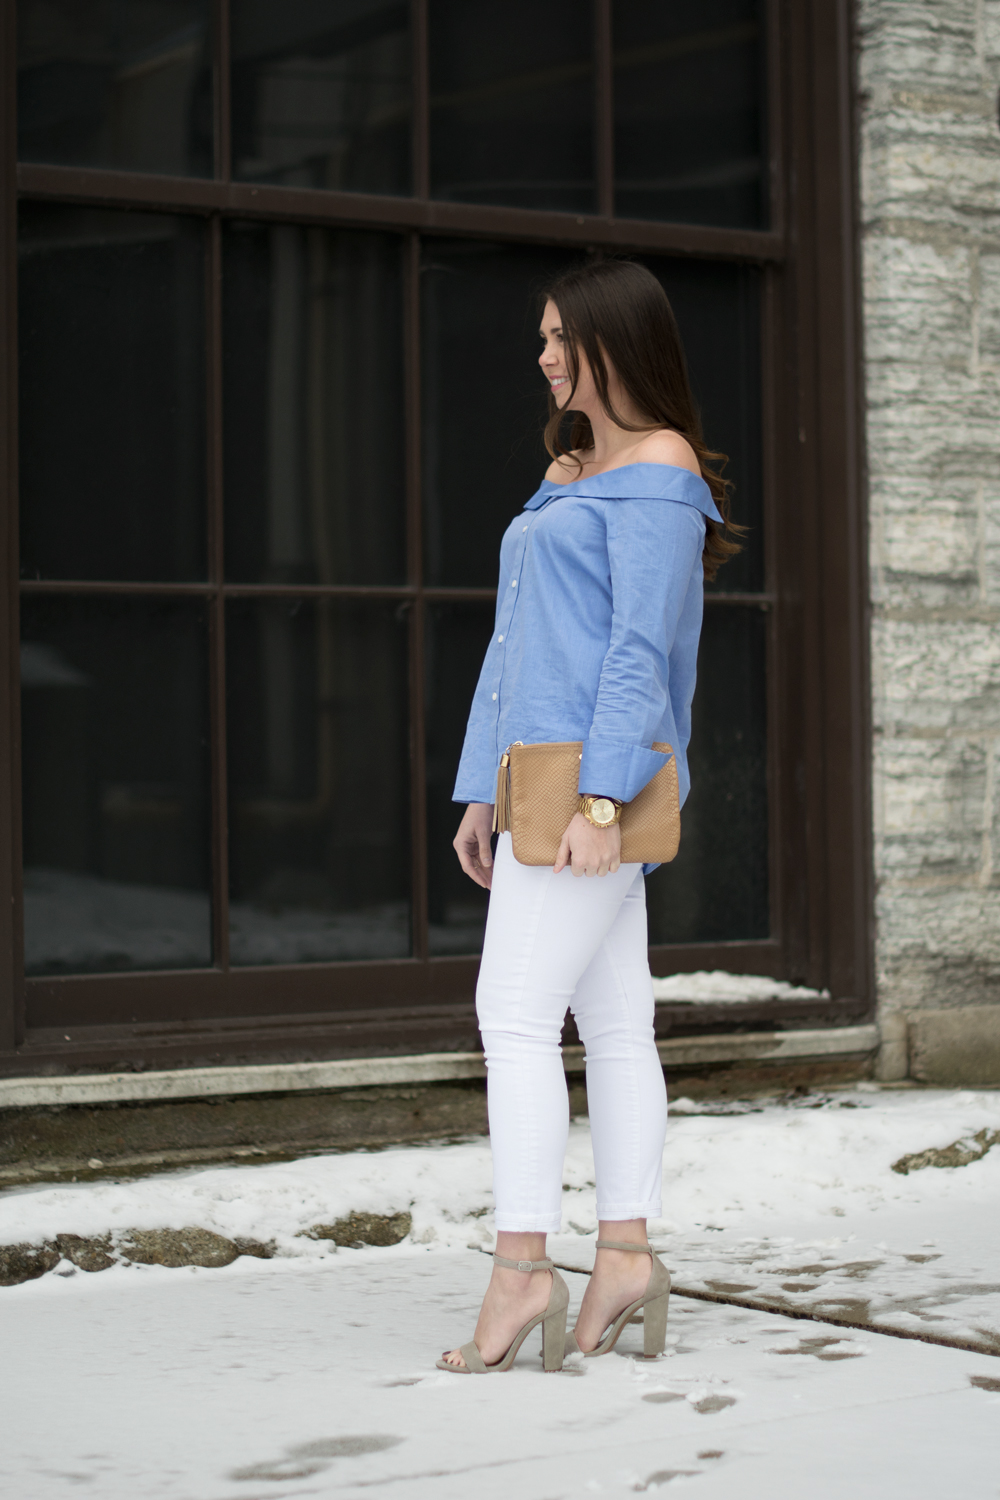 Blue and white outfit with neutral accessories.